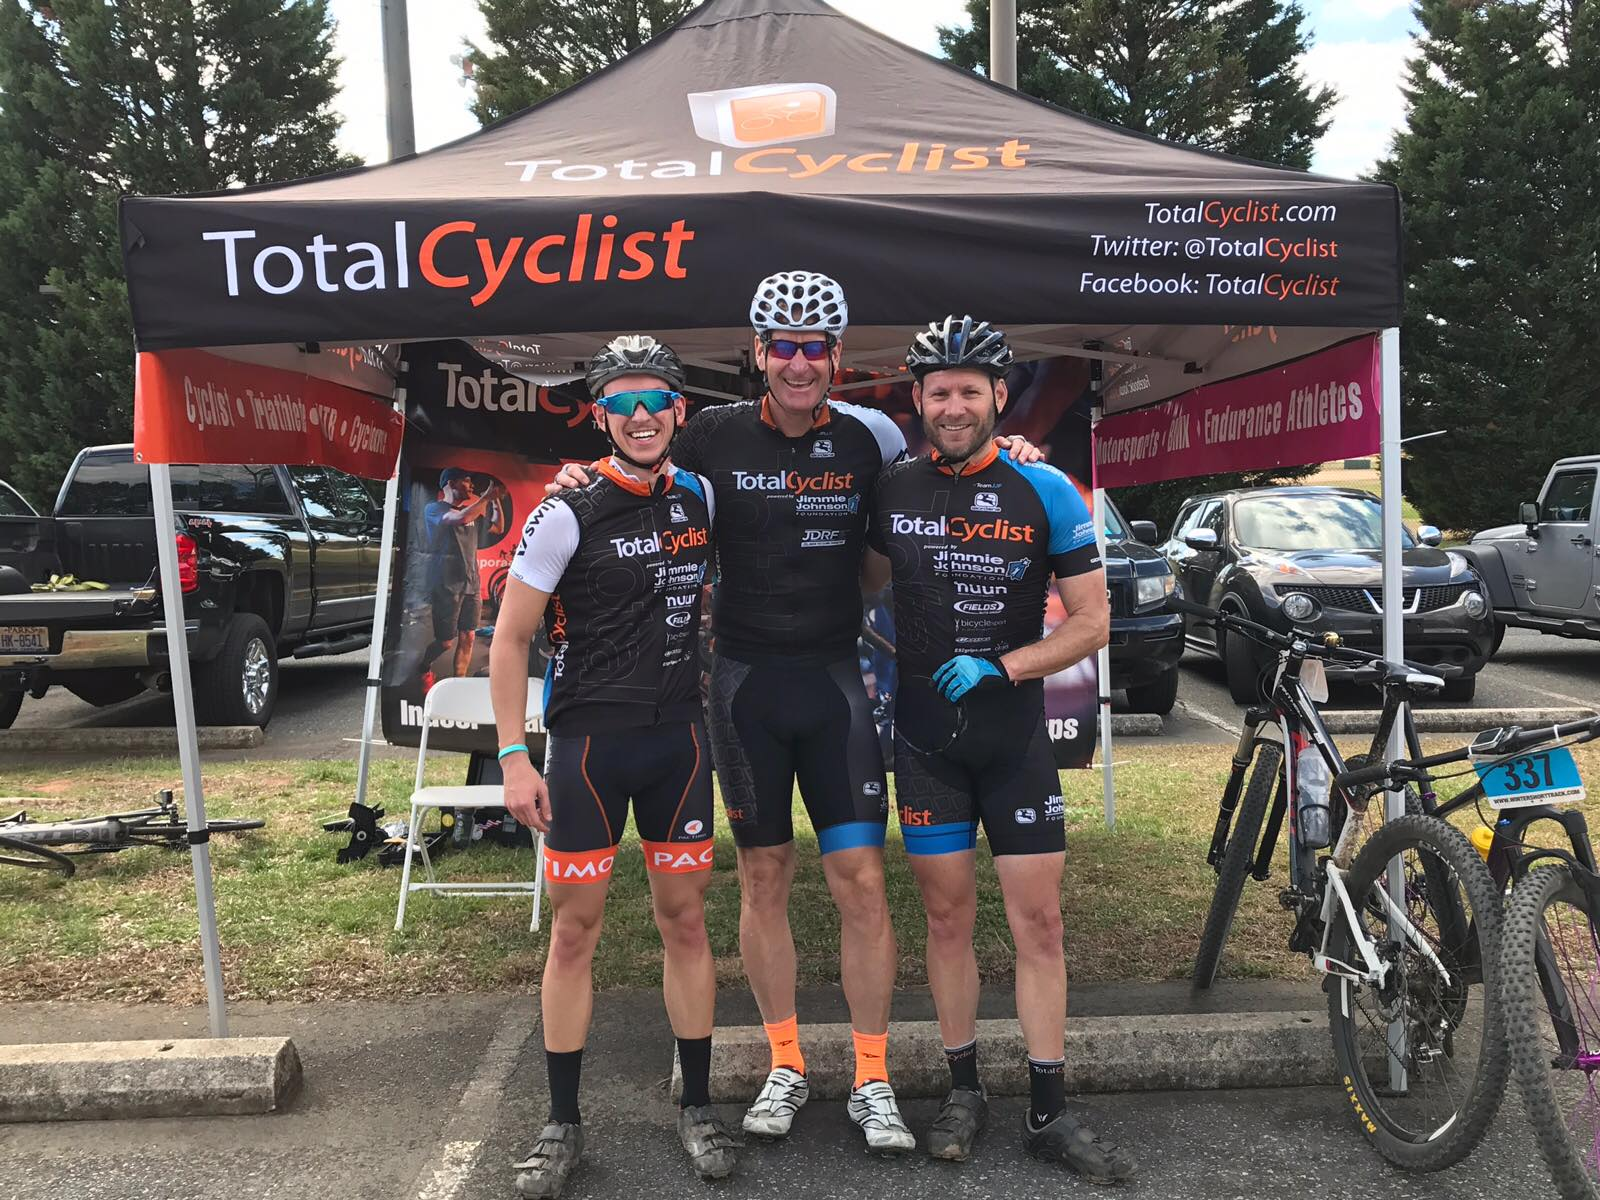 TotalCyclist nets 3 top 10s